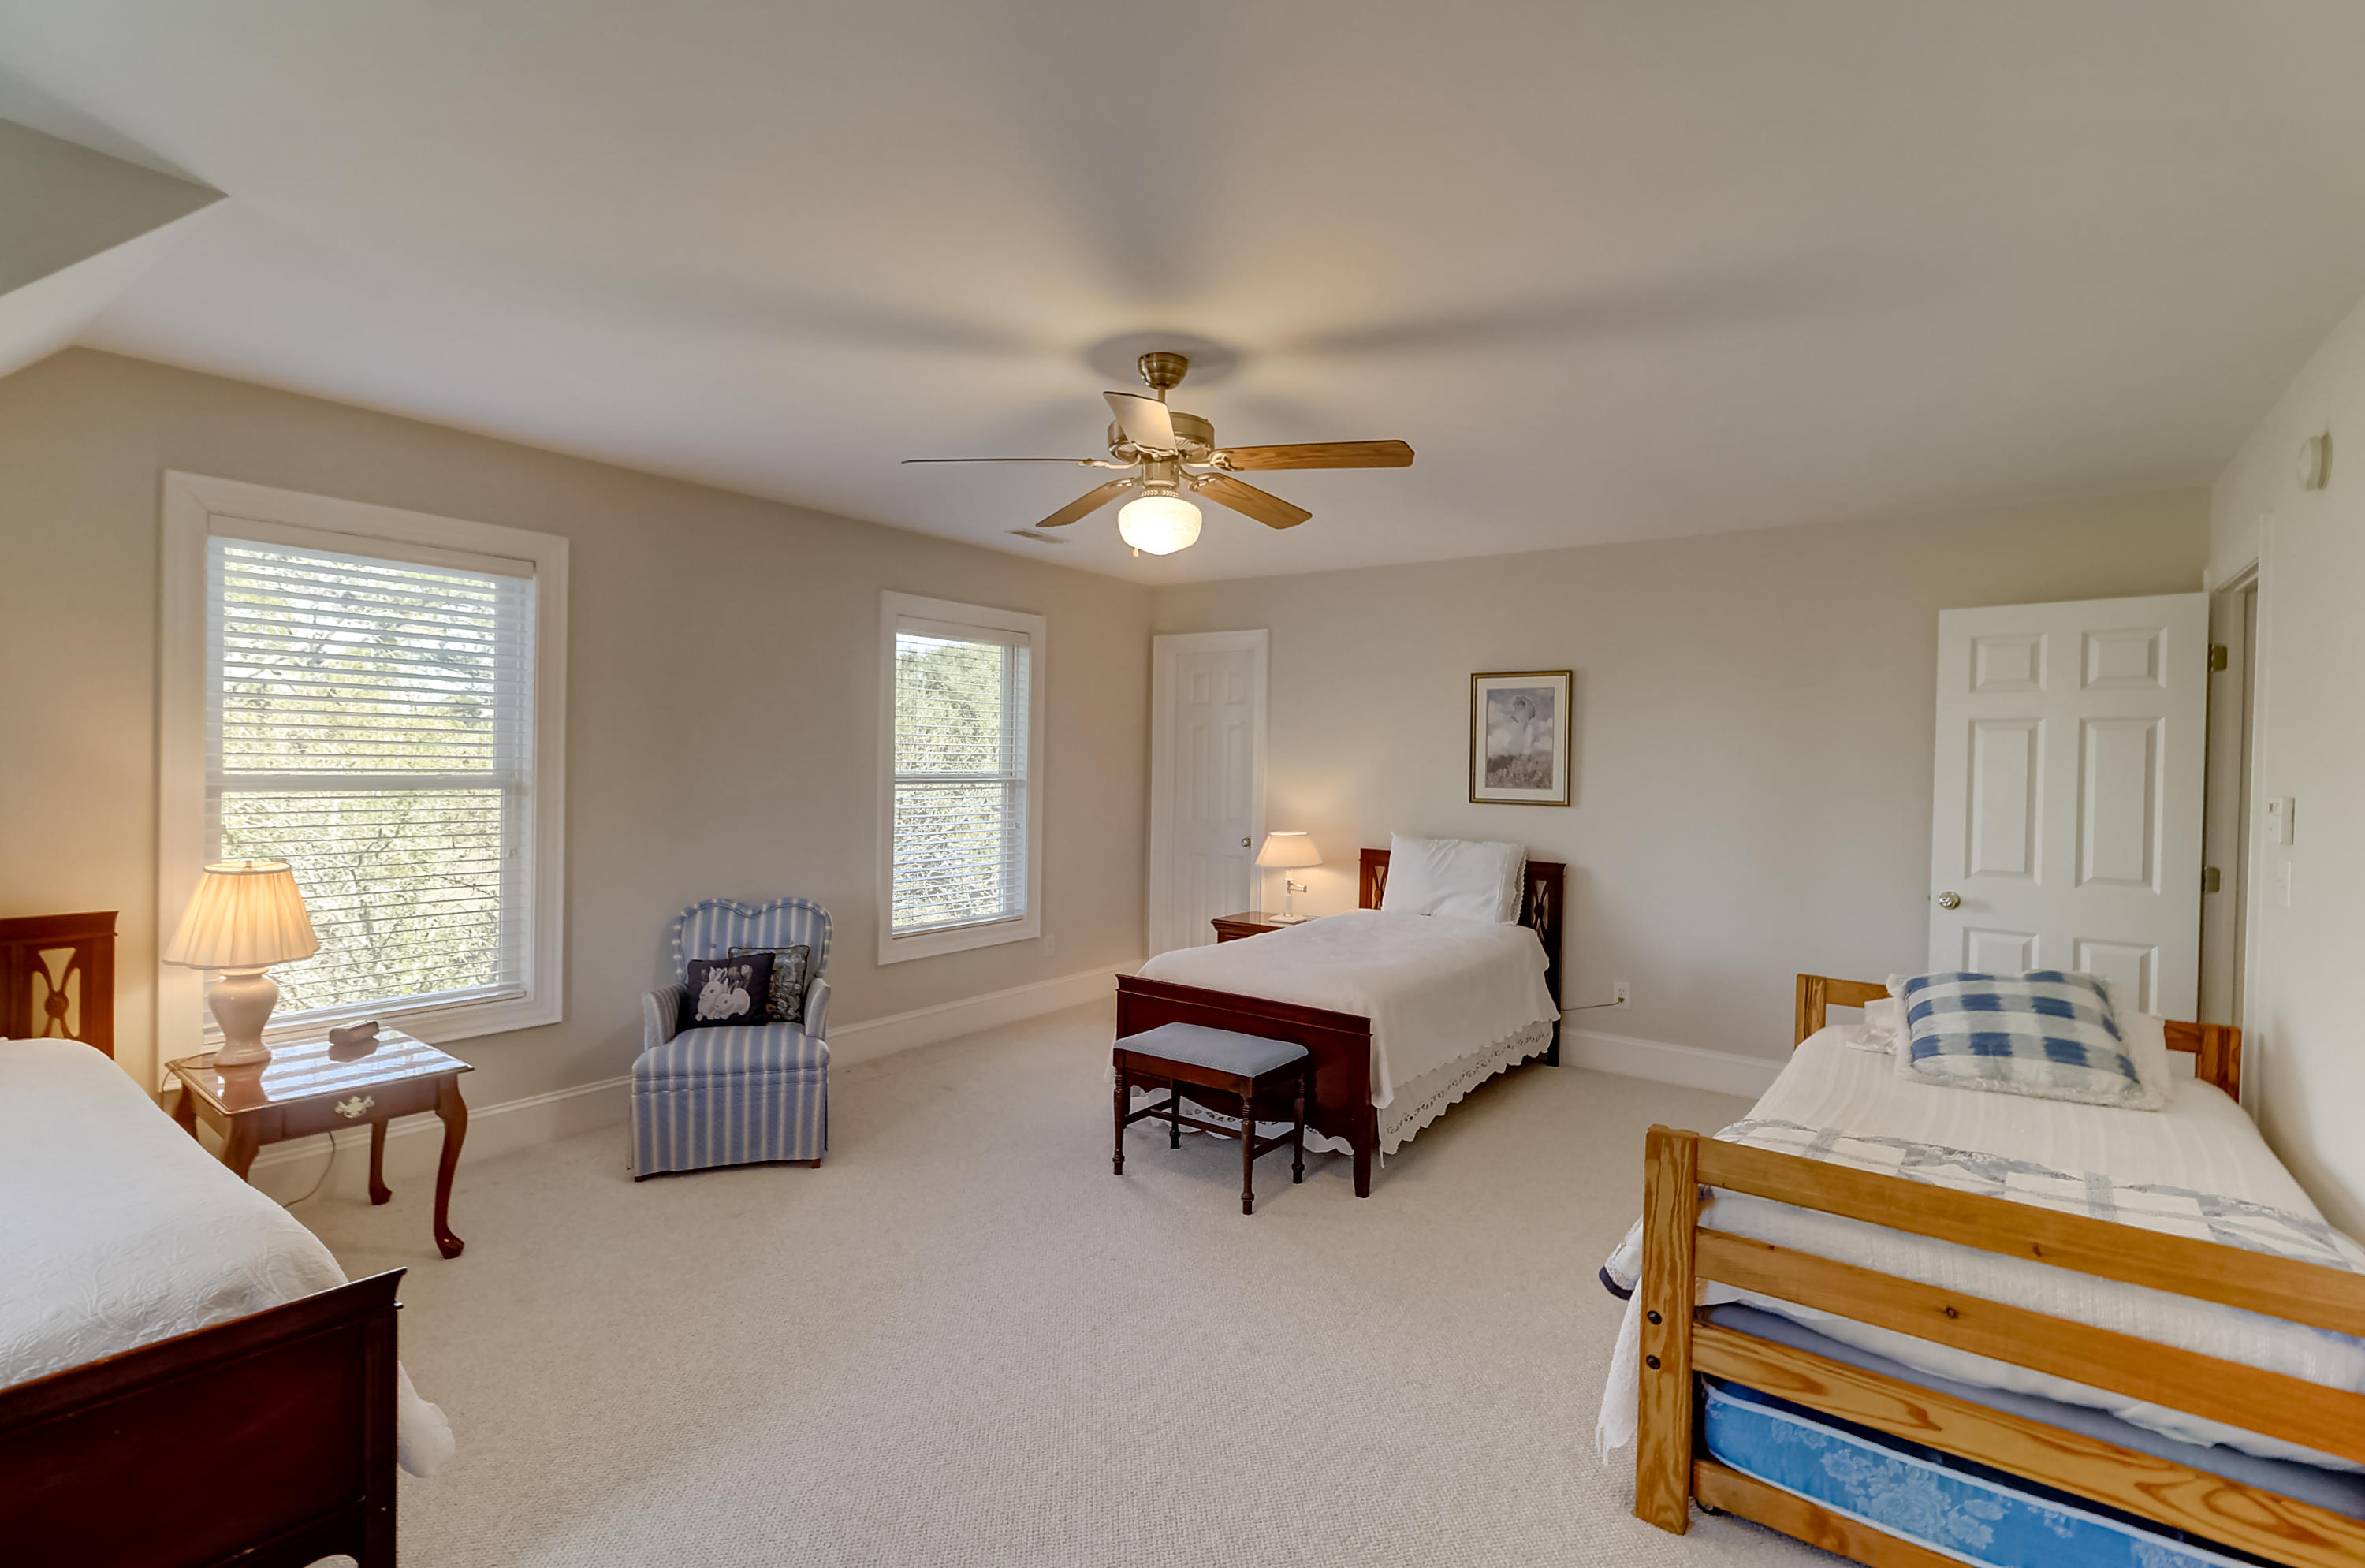 Stratton Place Homes For Sale - 1494 Stratton, Mount Pleasant, SC - 18